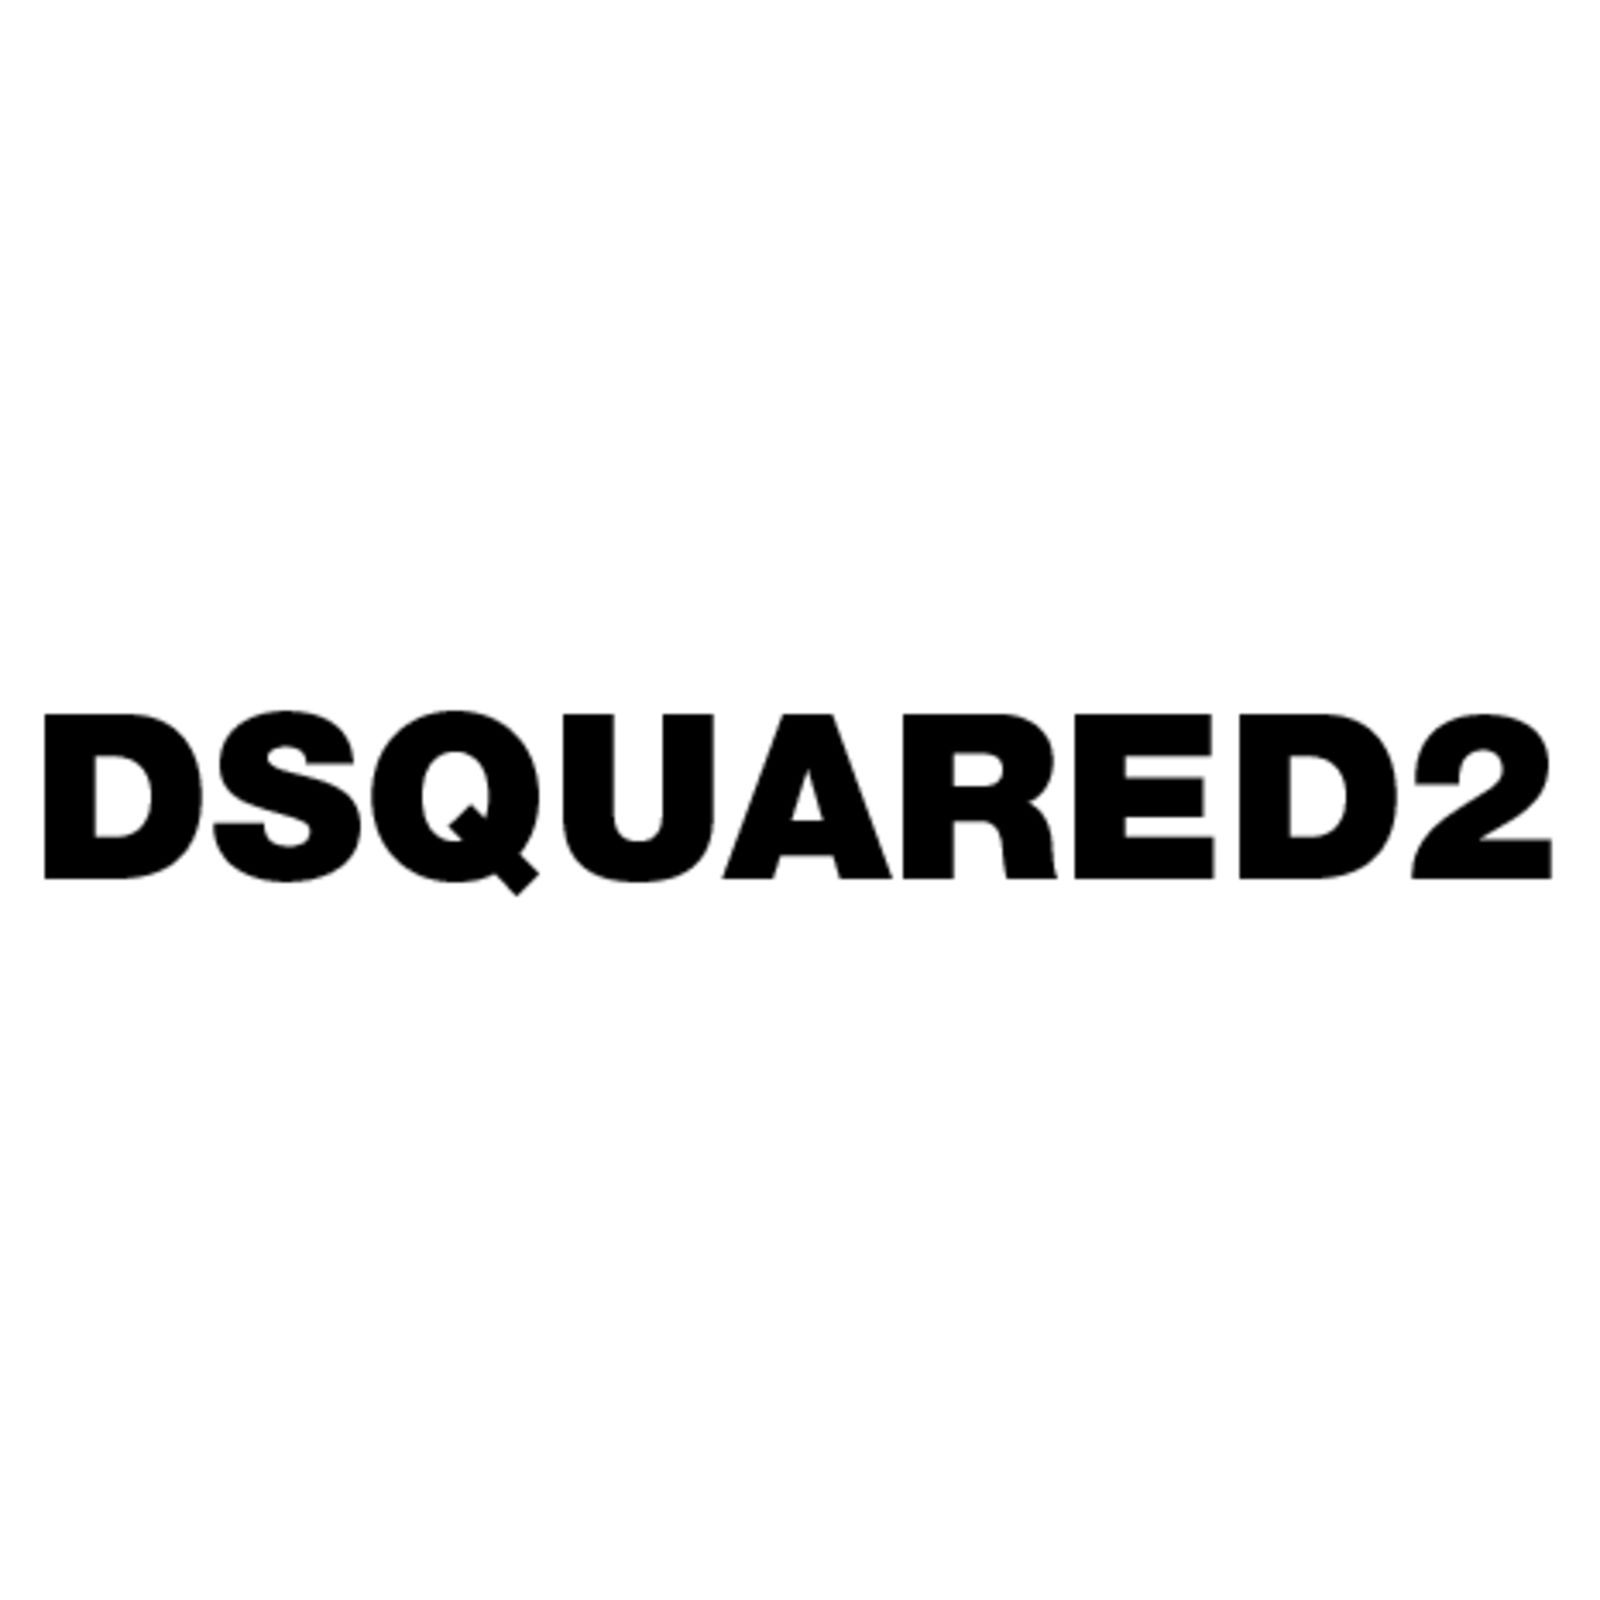 DSQUARED2 (Image 1)